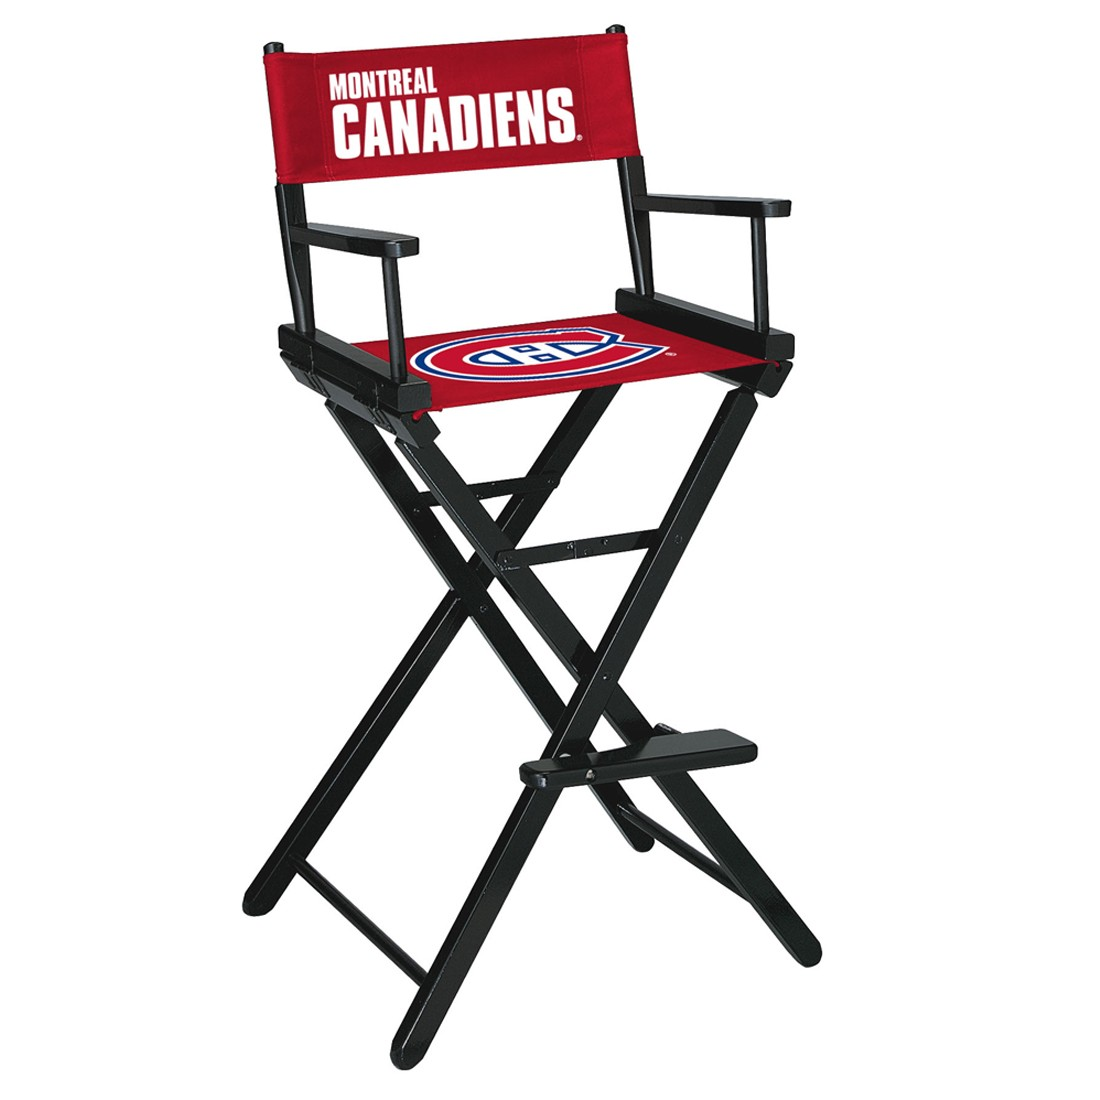 MONTREAL CANADIENS® BAR HEIGHT DIRECTORS CHAIR